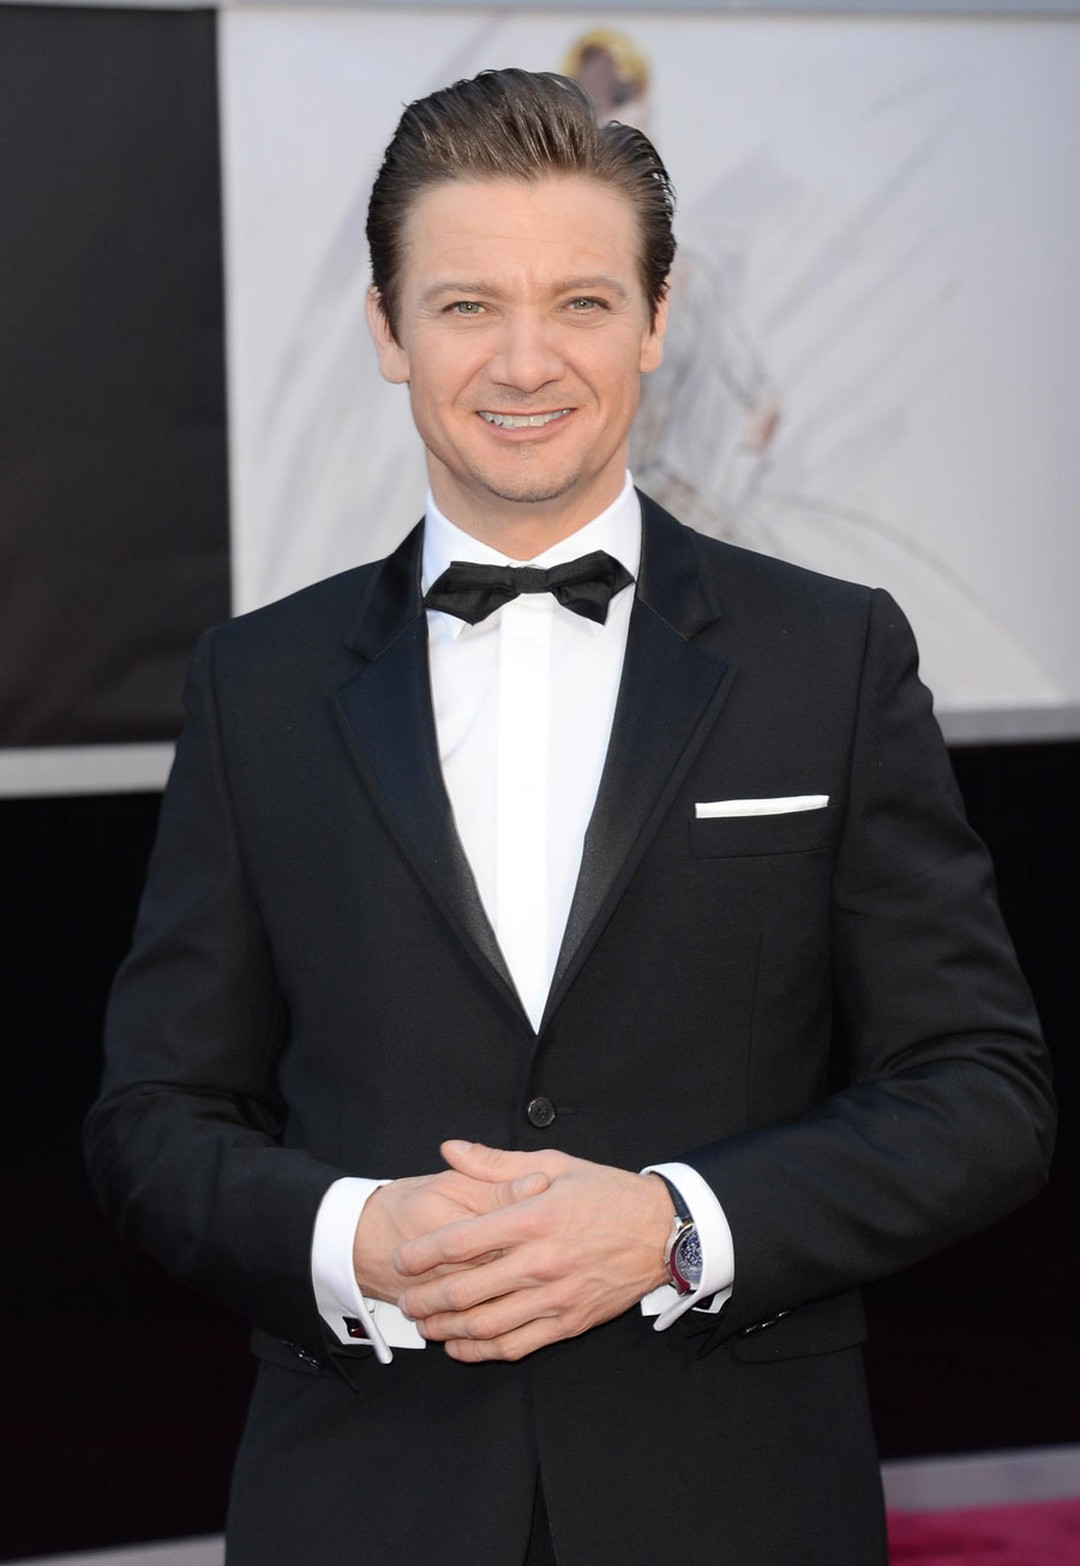 Jeremy-Renner---Van-Cleef-and-Arpels---Photo-by-Jason-Merritt-Getty-Images-162546111